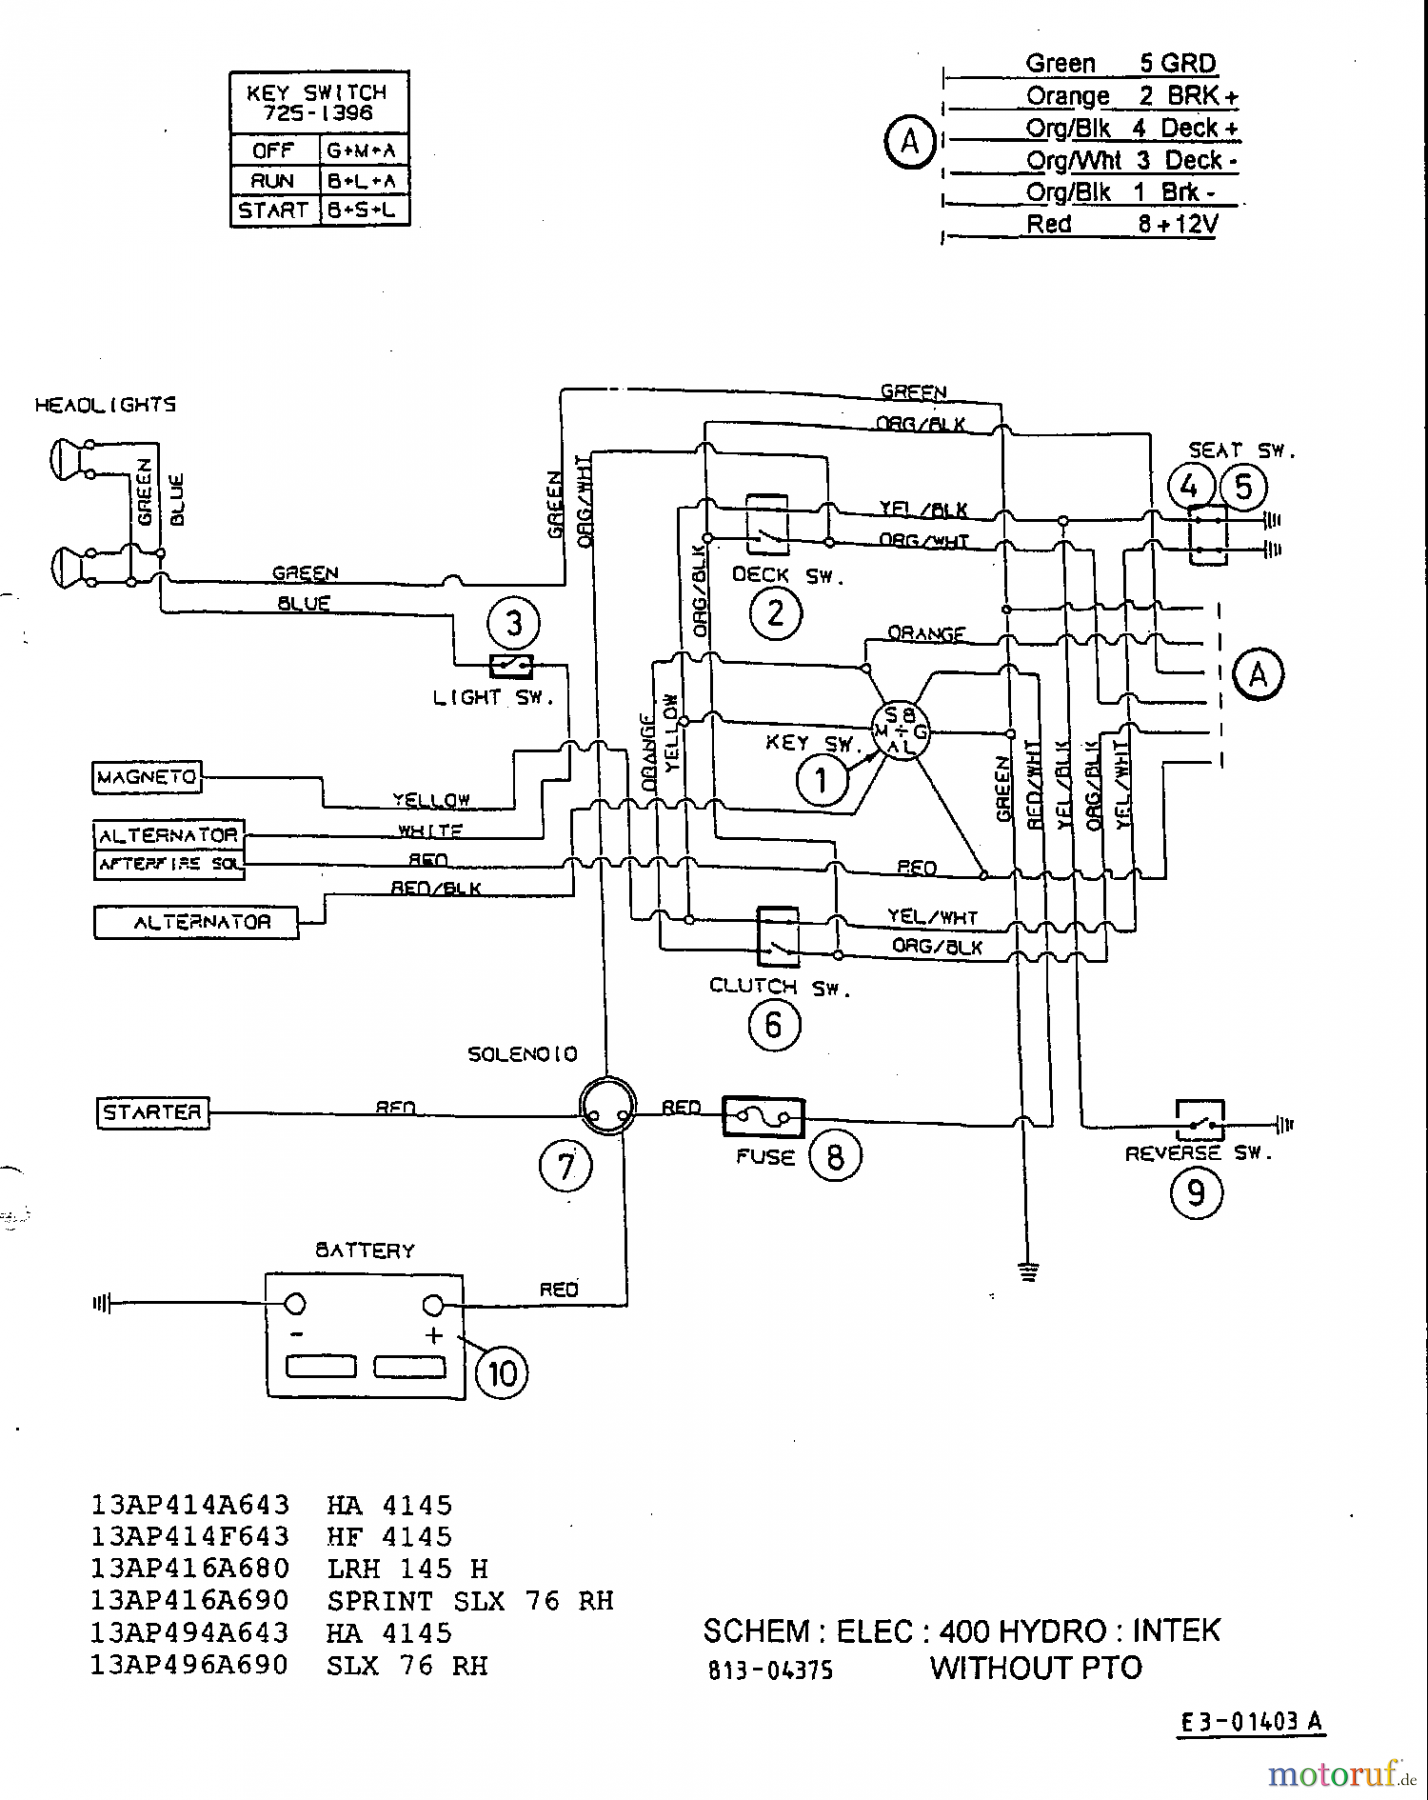 small resolution of agway lawn mower wiring diagram simple wiring diagrams rh 37 studio011 de toro timecutter wiring diagram ss 5000 toro timecutter wiring diagram ss 5000